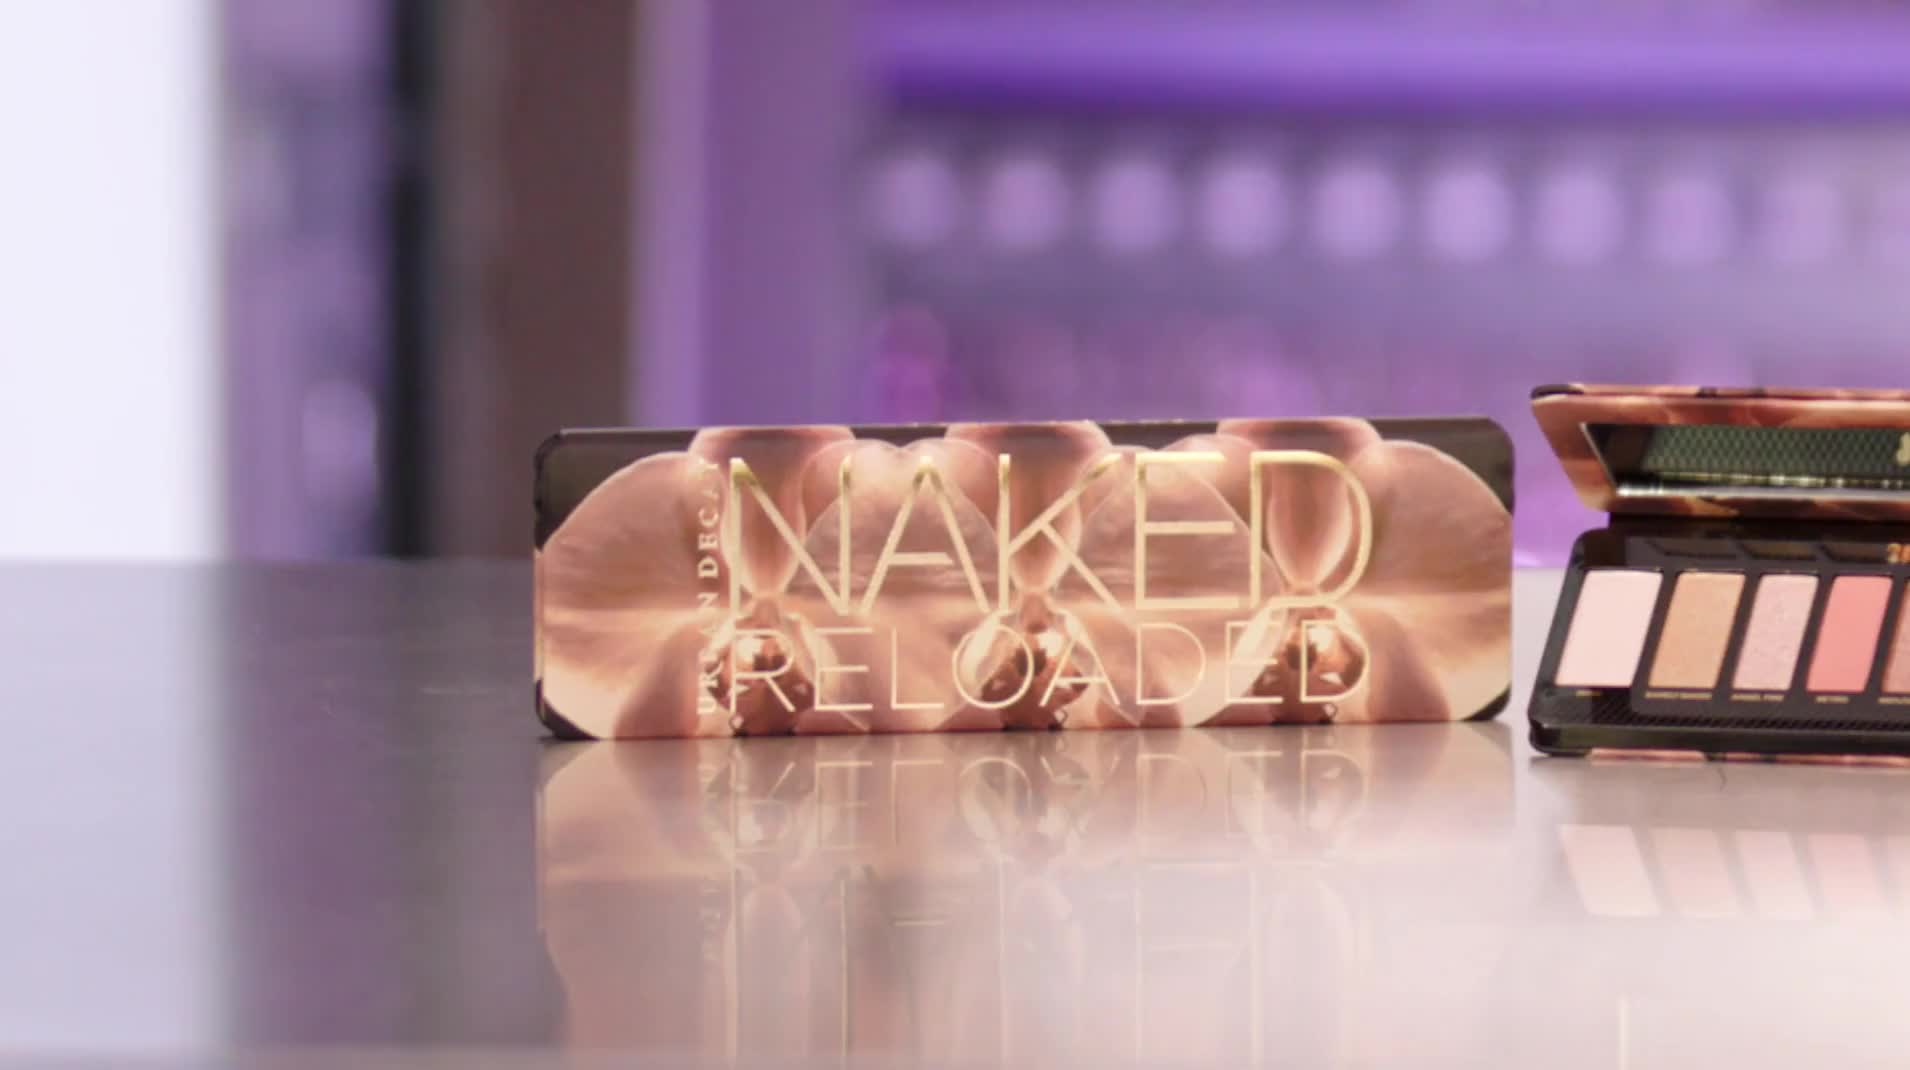 Wende Reveals the Naked Reloaded Eyeshadow Palette | NEW from Urban Decay